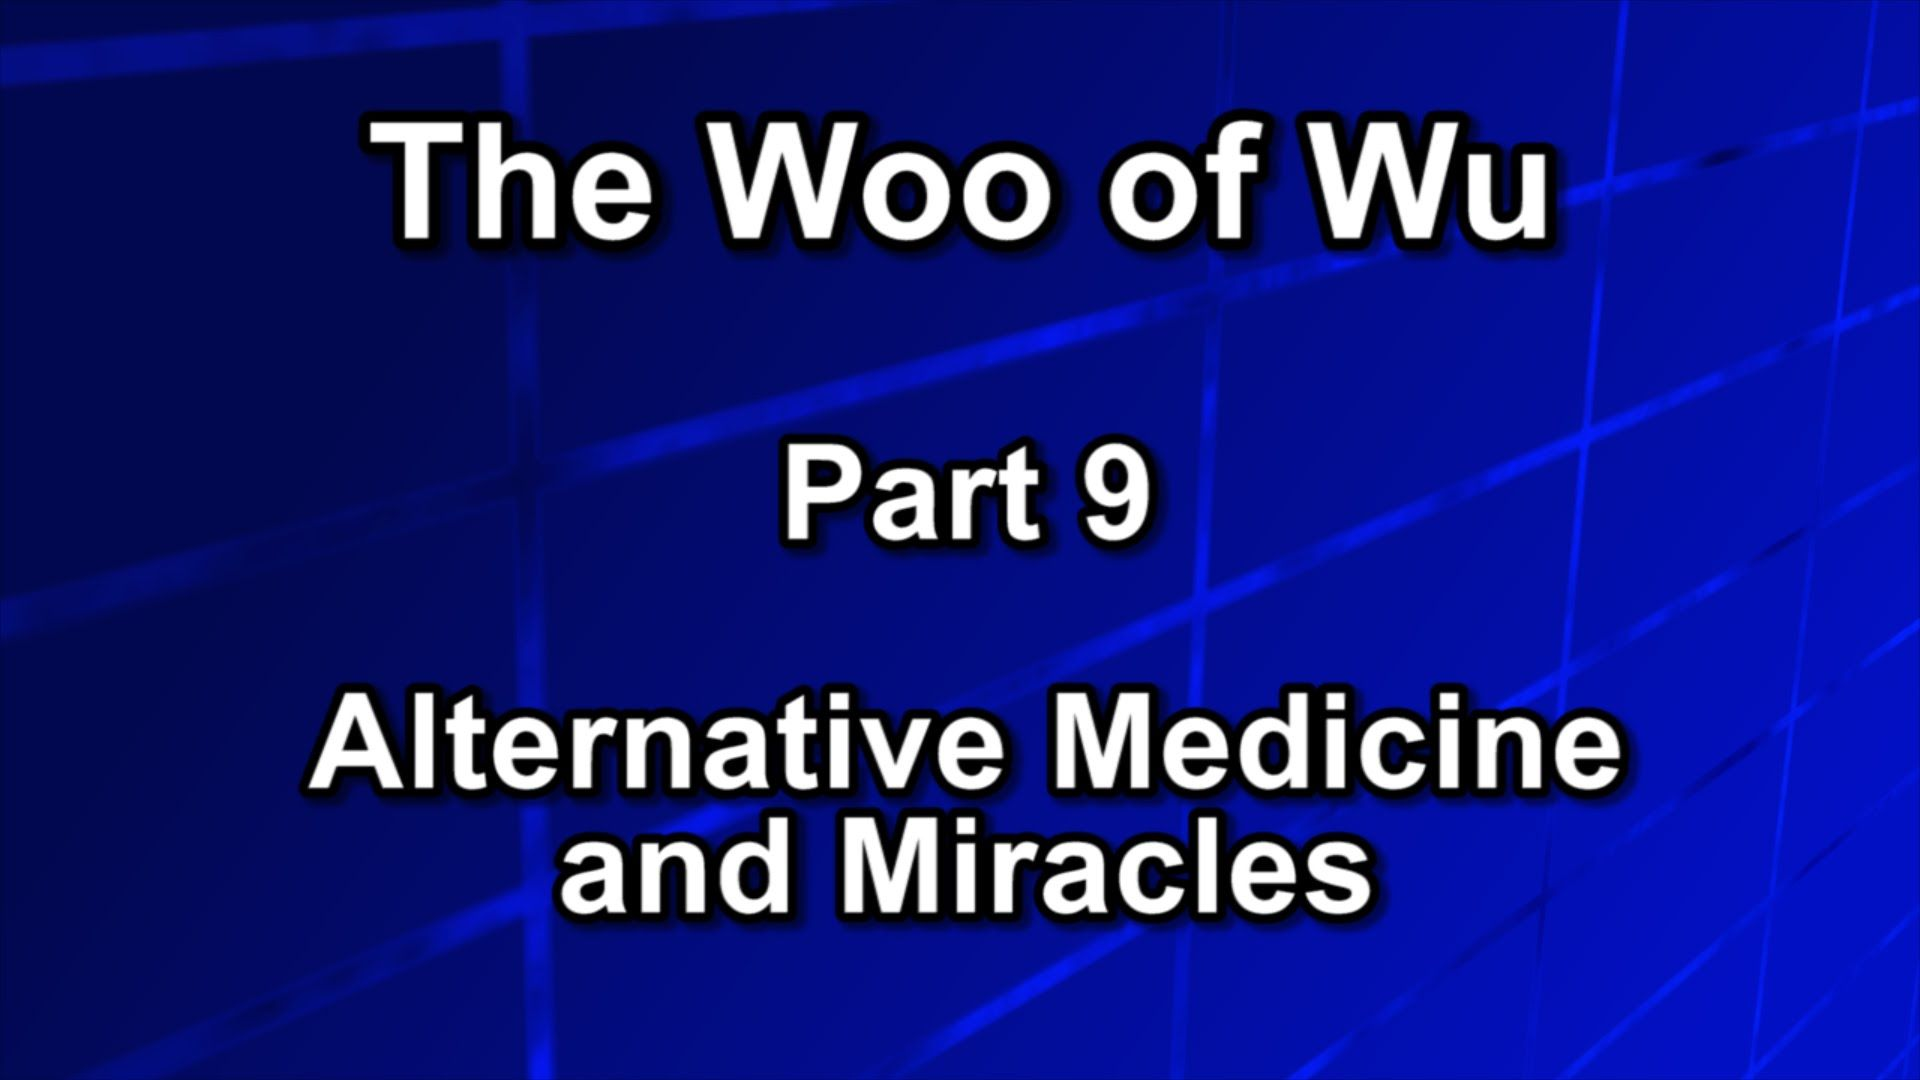 The Woo of Wu Part 9 Alternative Medicine and Miracles